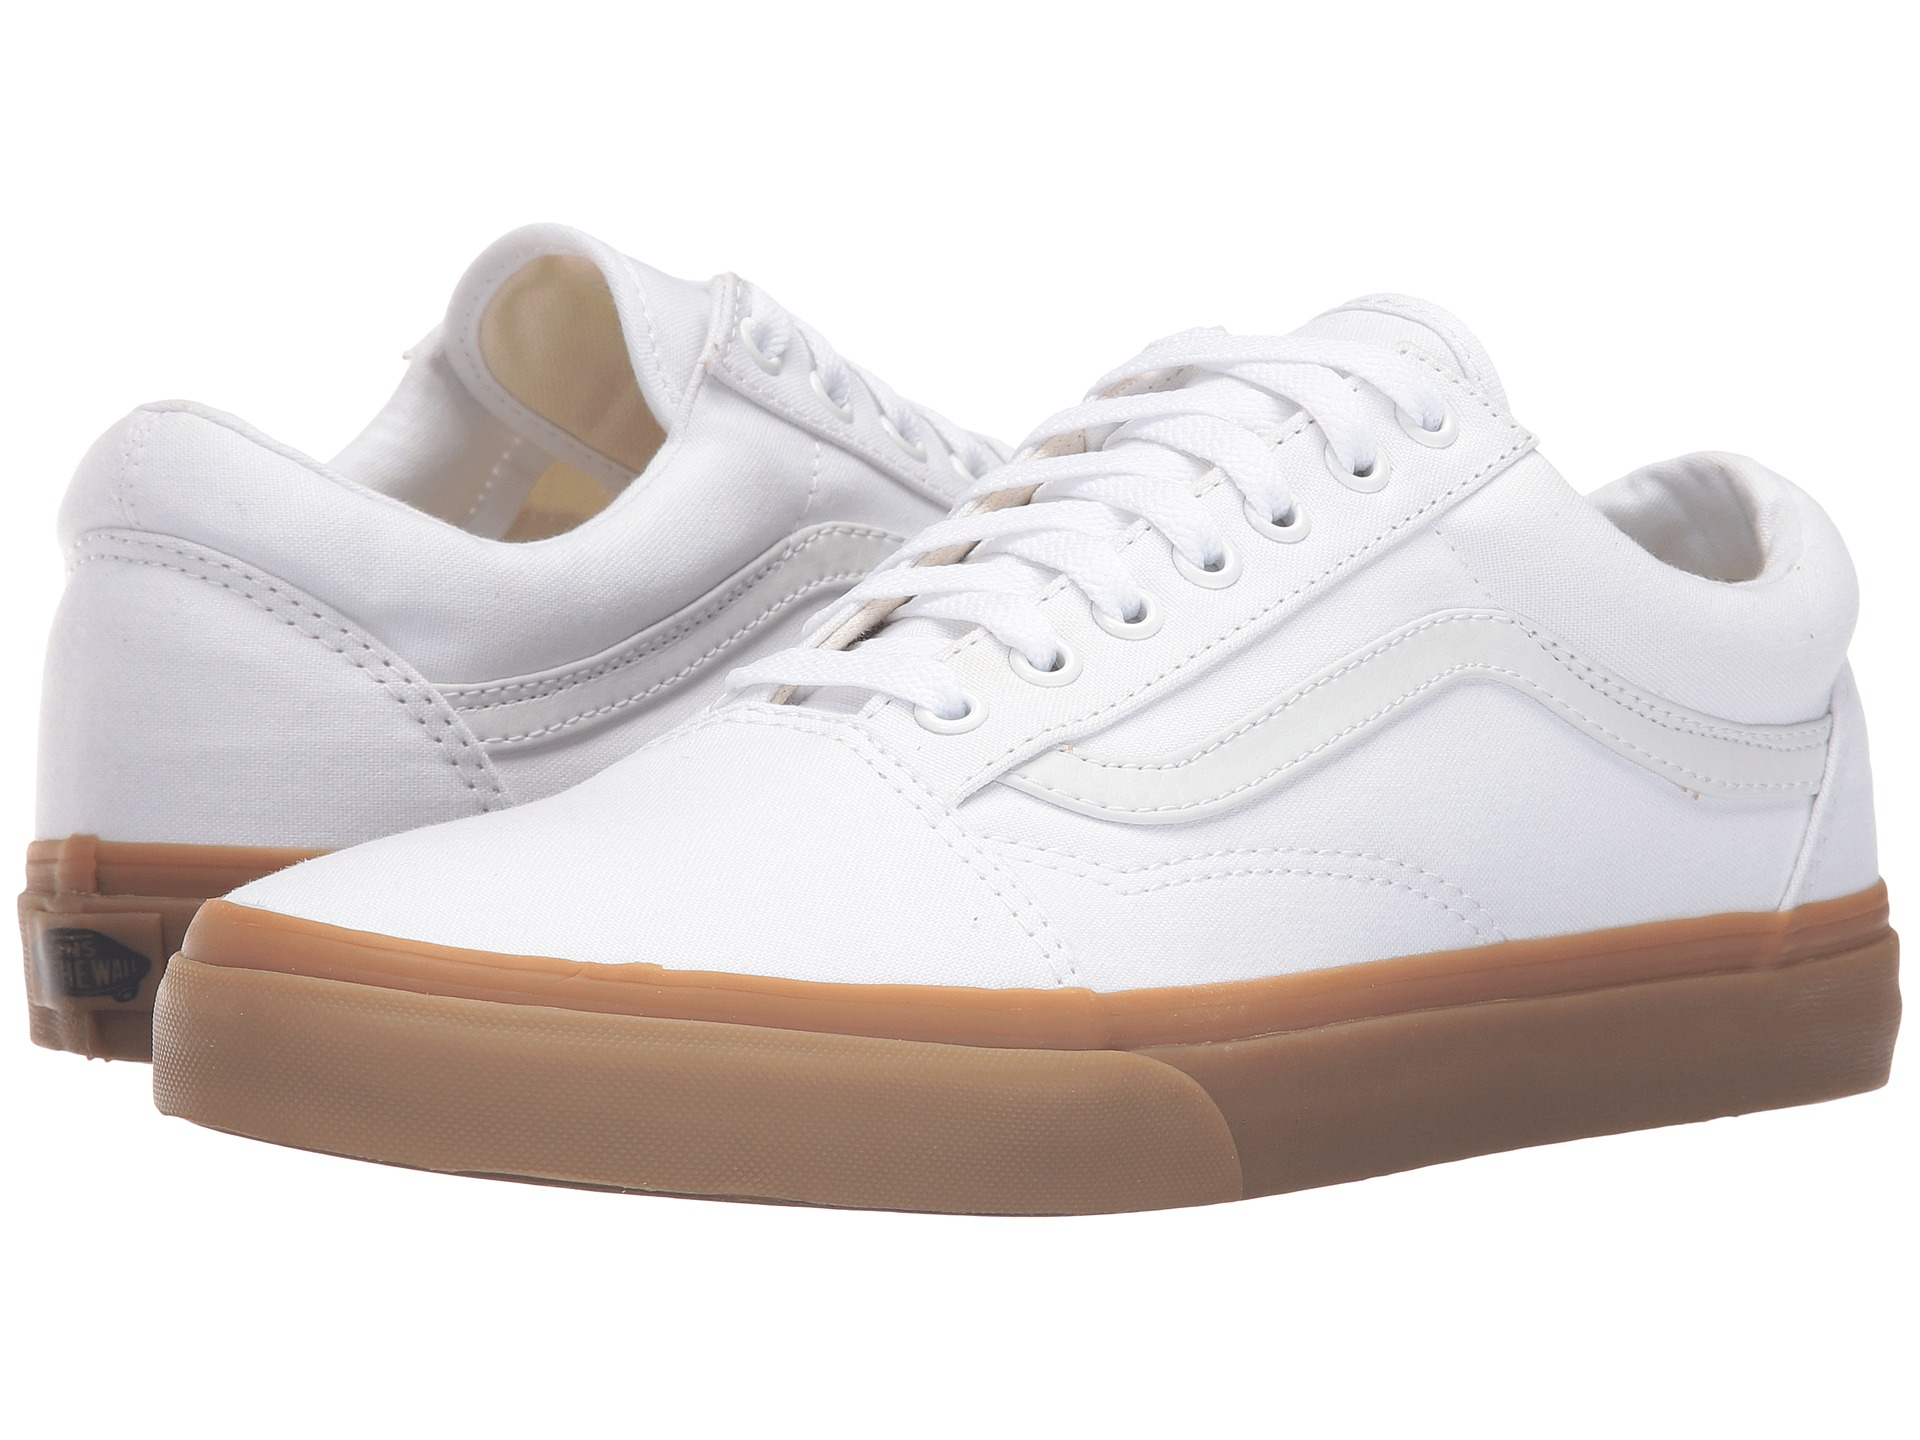 Lyst - Vans Old Skool X Gum Pack 295a27276